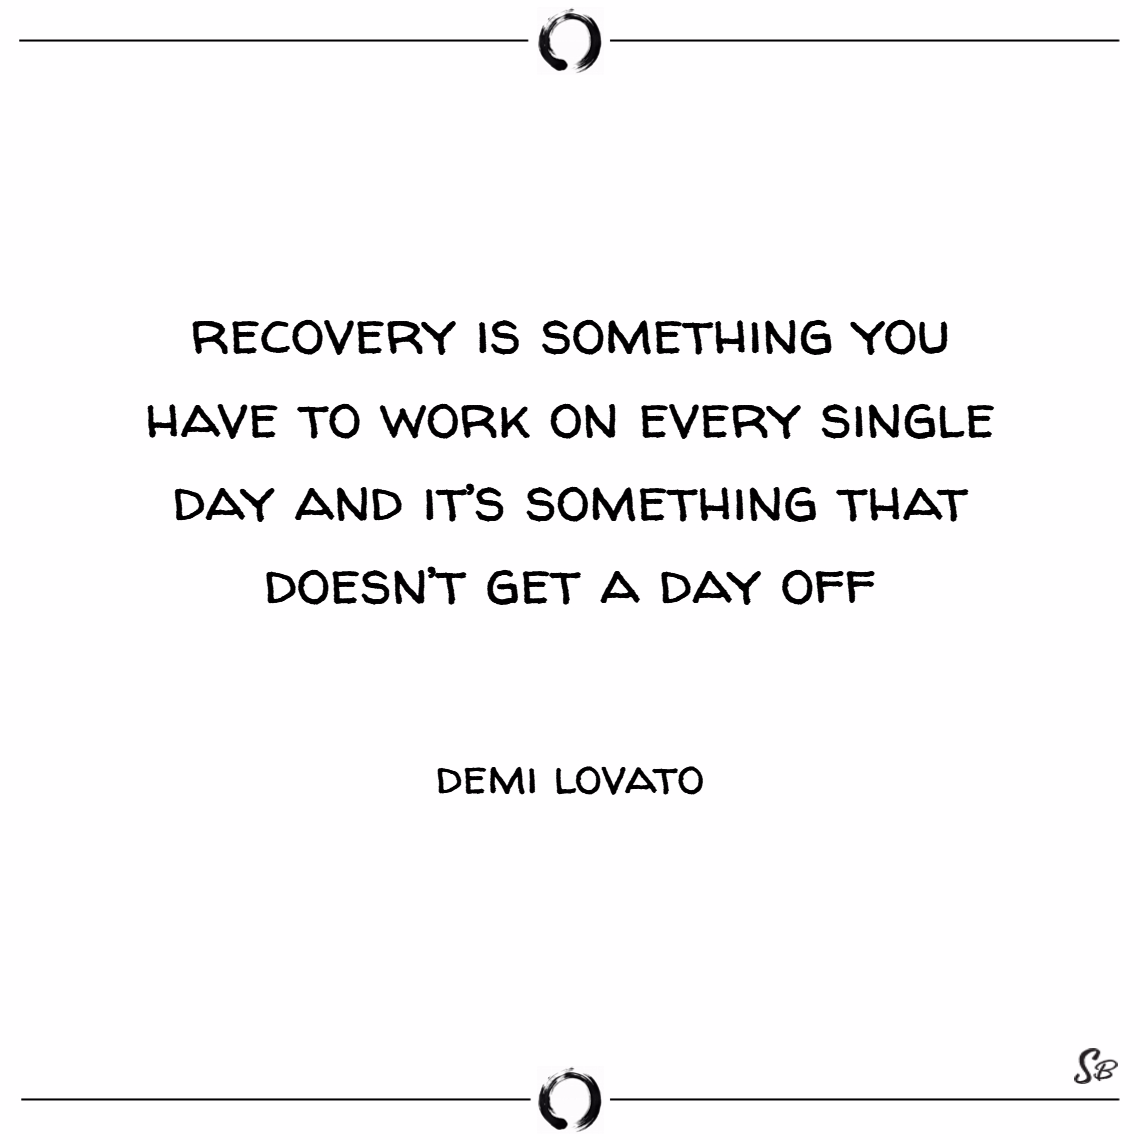 Recovery is something you have to work on every single day and it's something that doesn't get a day off. – demi lovato